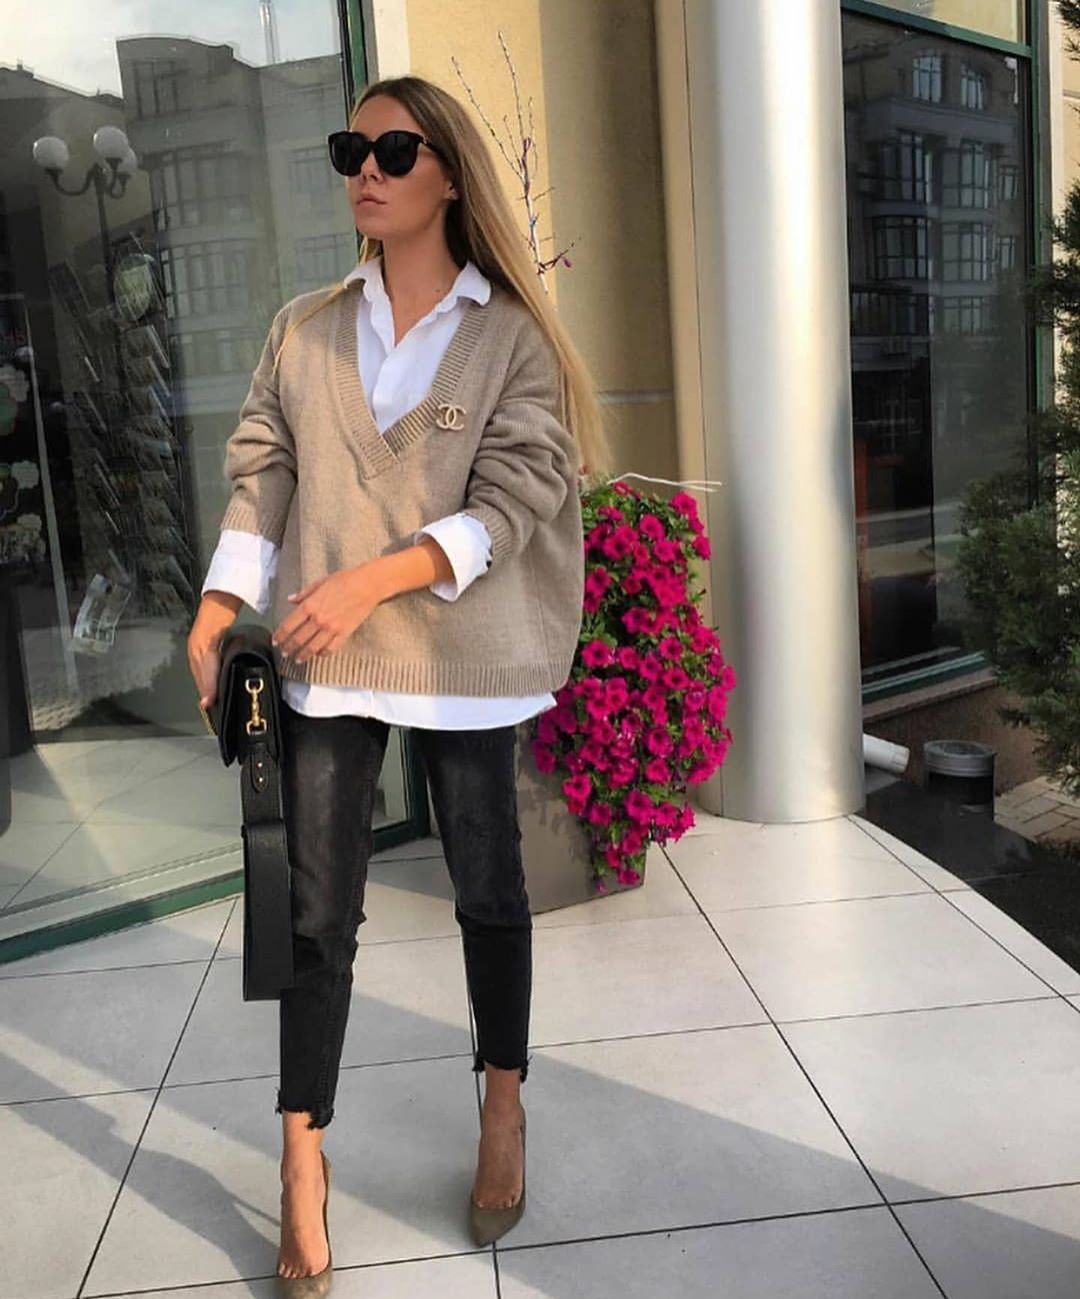 This Easy, Chic Outfit is What We're Wearing Next — @natali_nata_ style